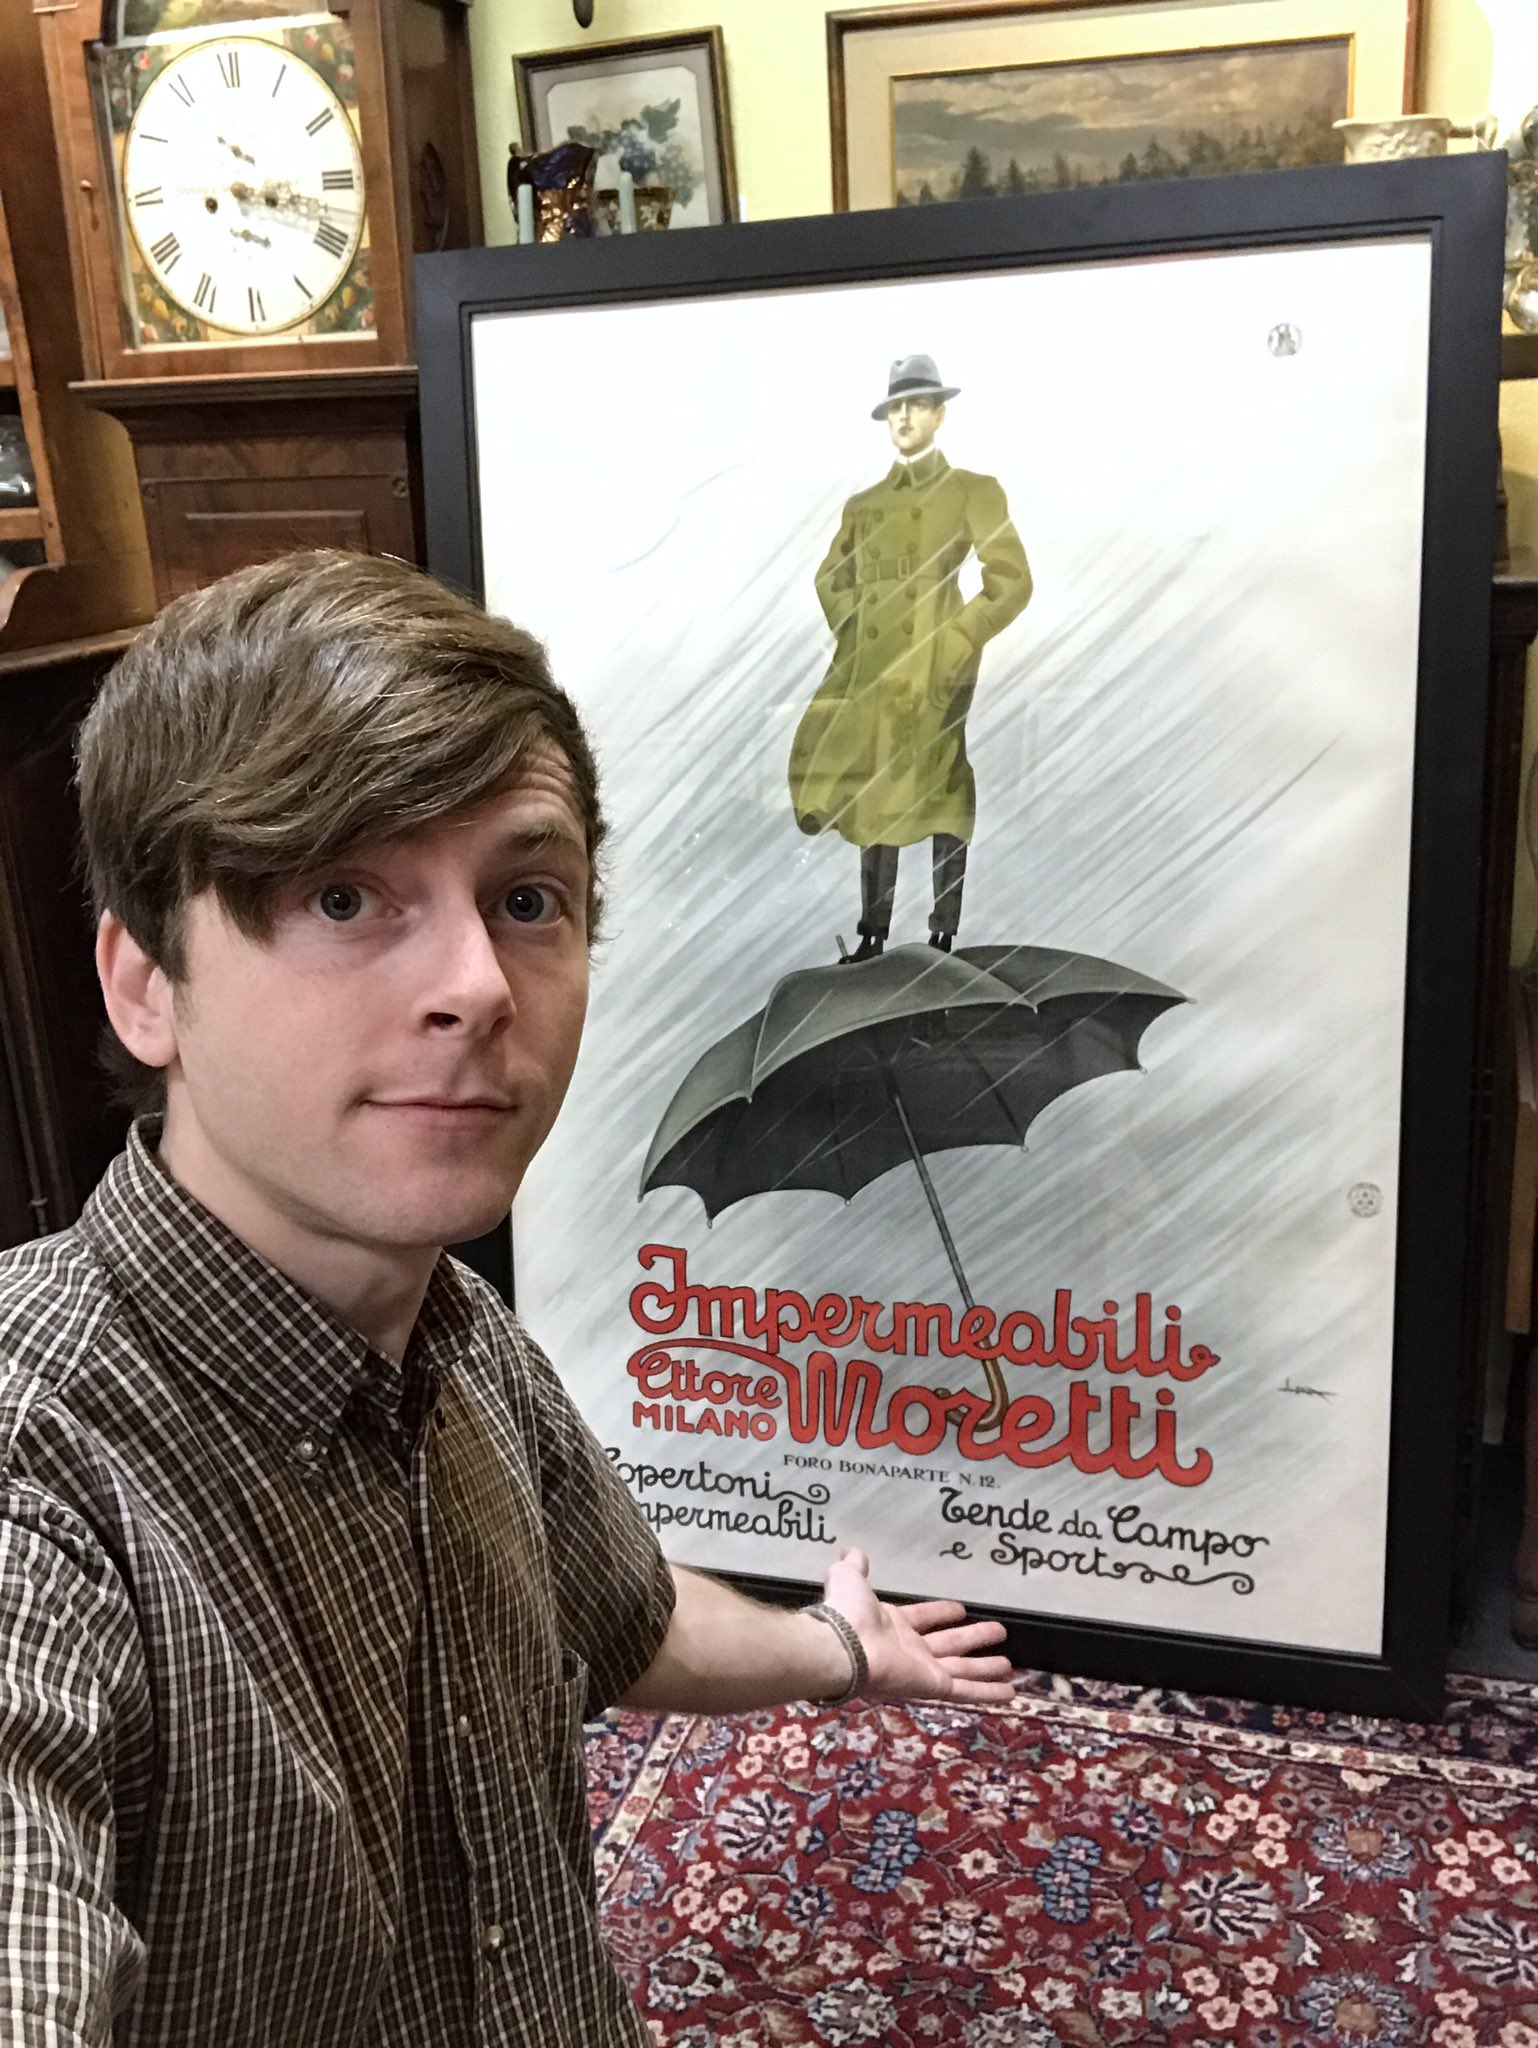 If you're looking for an antique Italian Raincoat advertisement.  I've got your wall covered.  ������☔️���� https://t.co/X5CMmHVVES